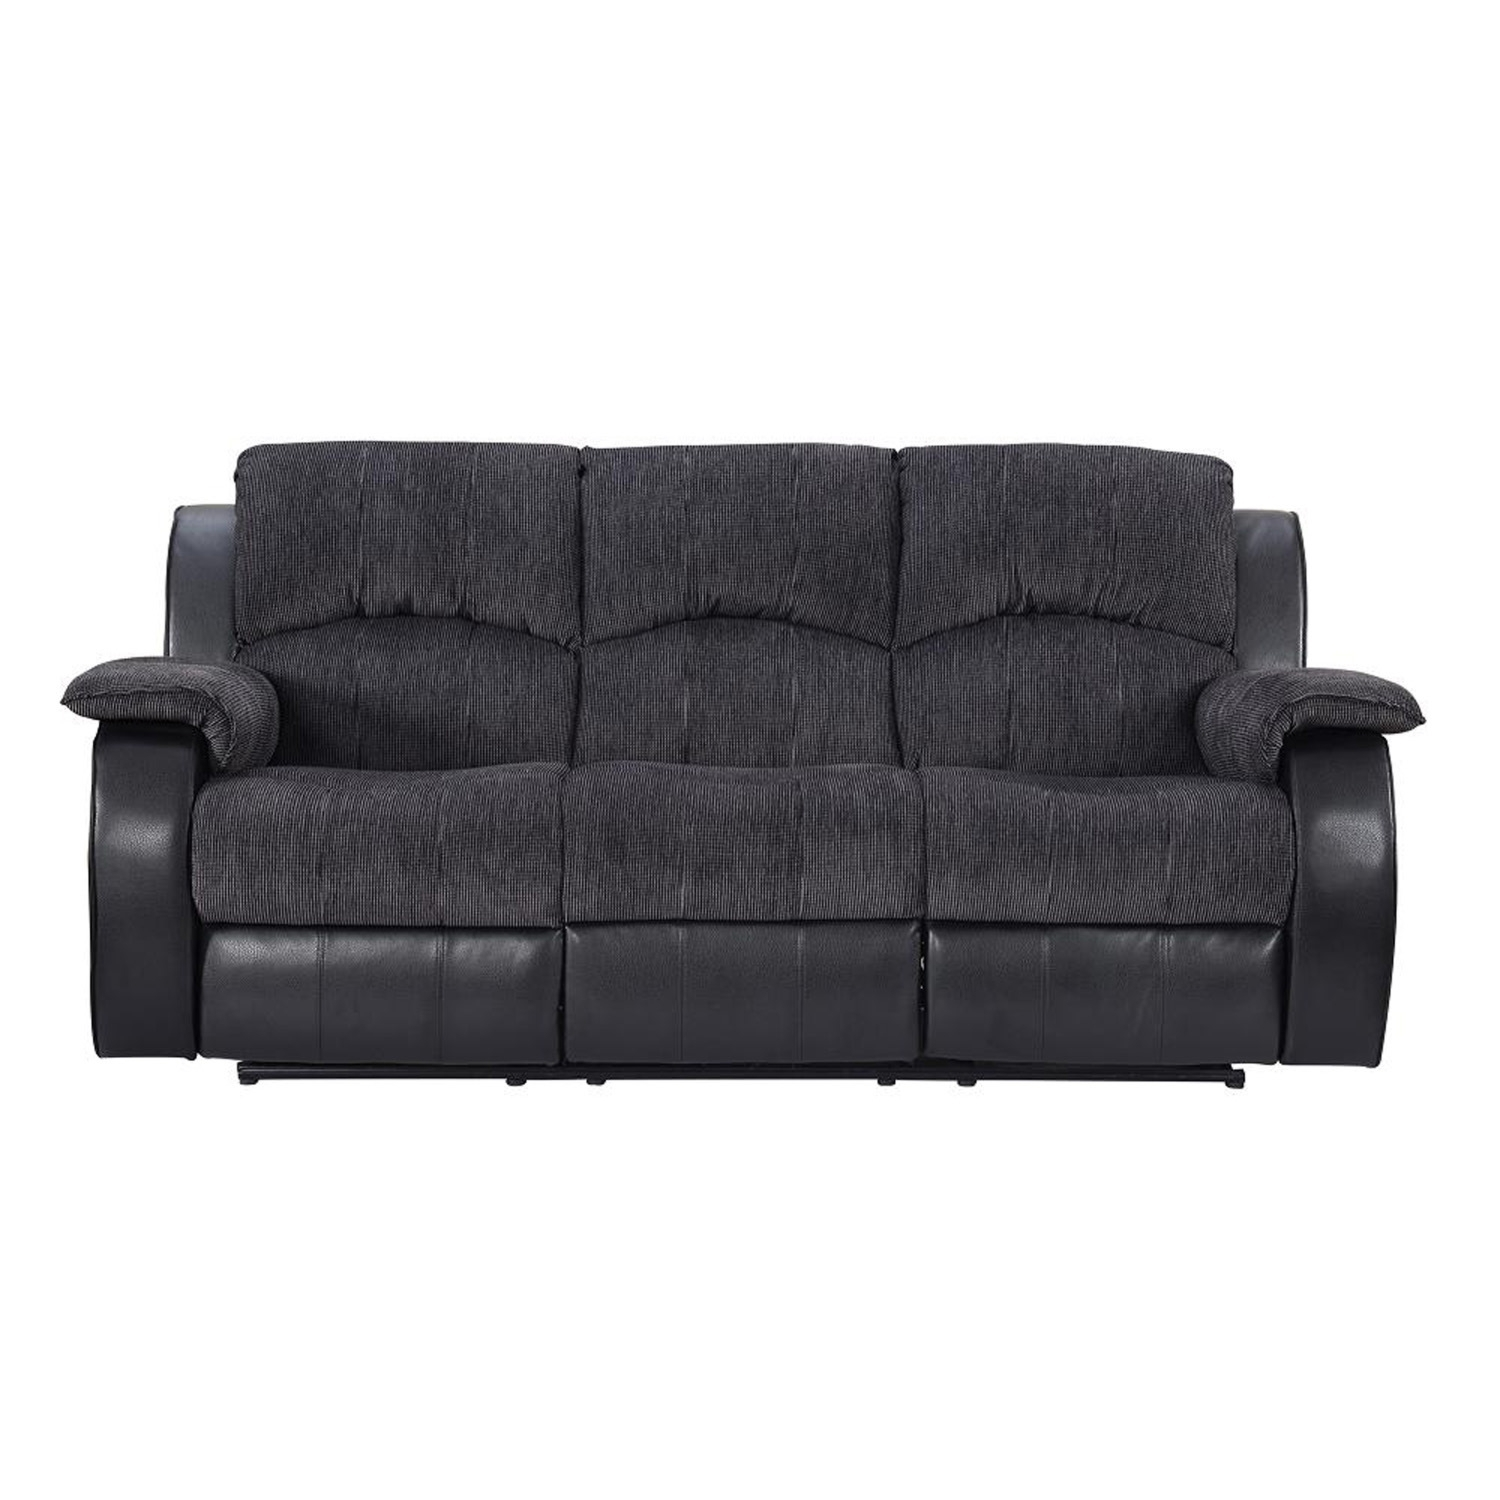 Recliner Sofas | The Range In Recliner Sofas (View 8 of 10)